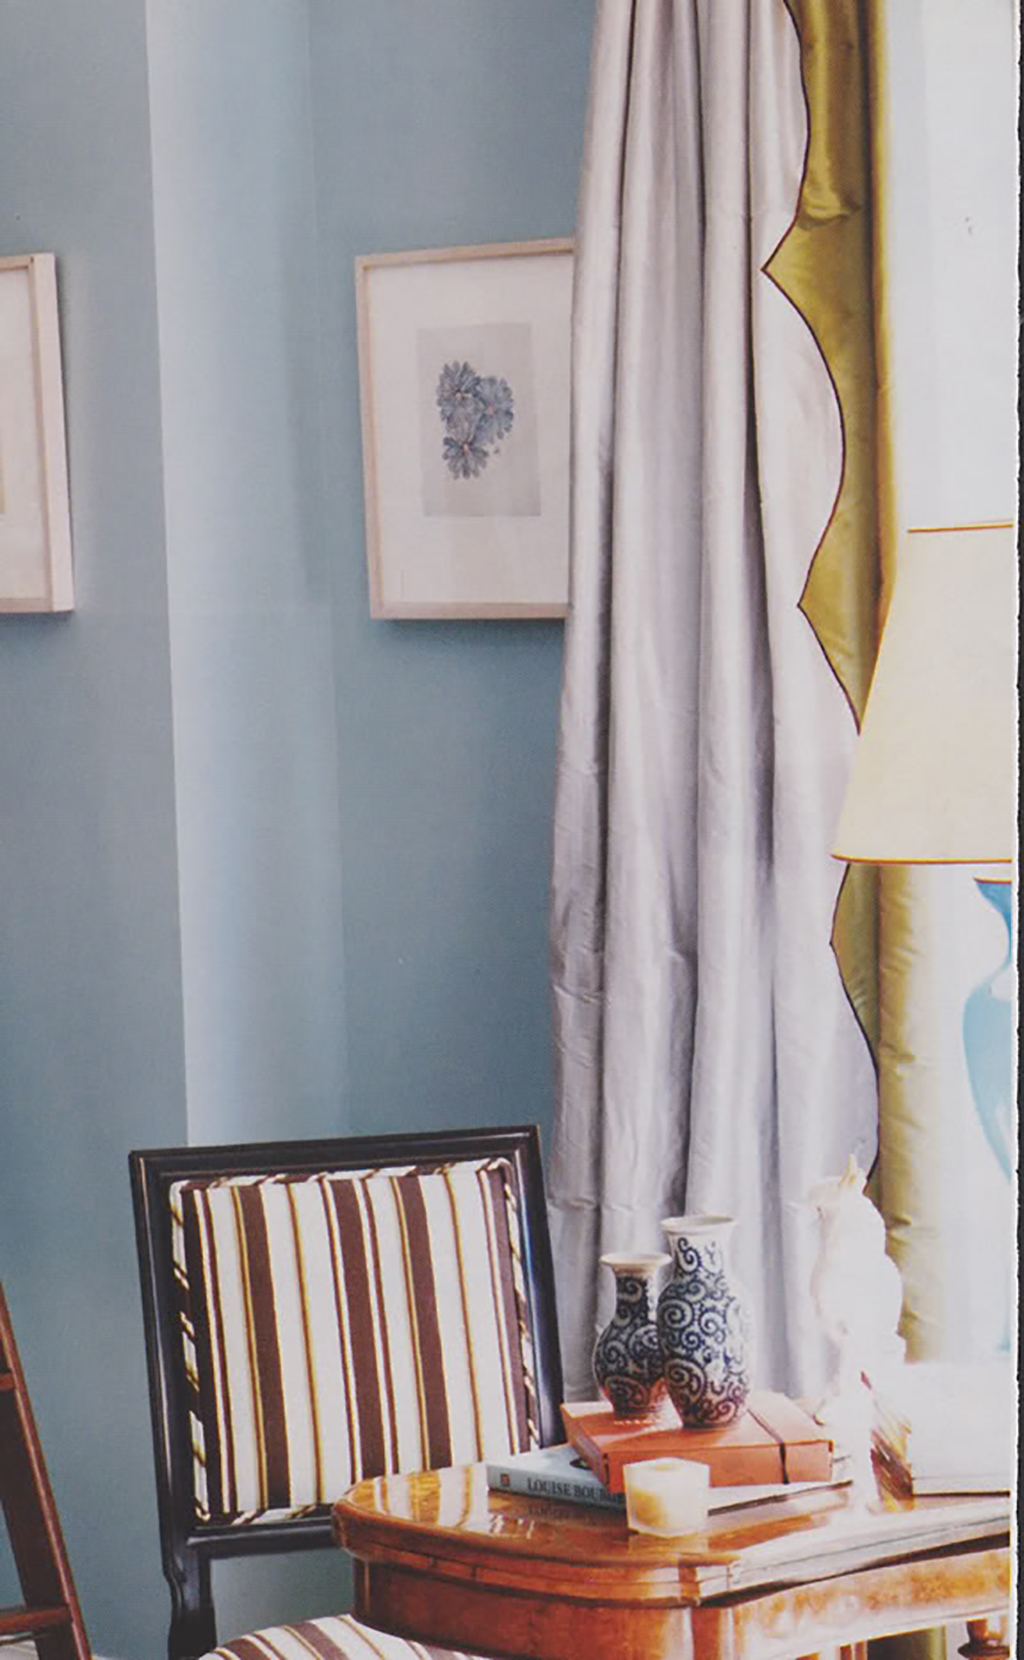 Ivanka Trump's Library in Apartment via Little Green Notebook